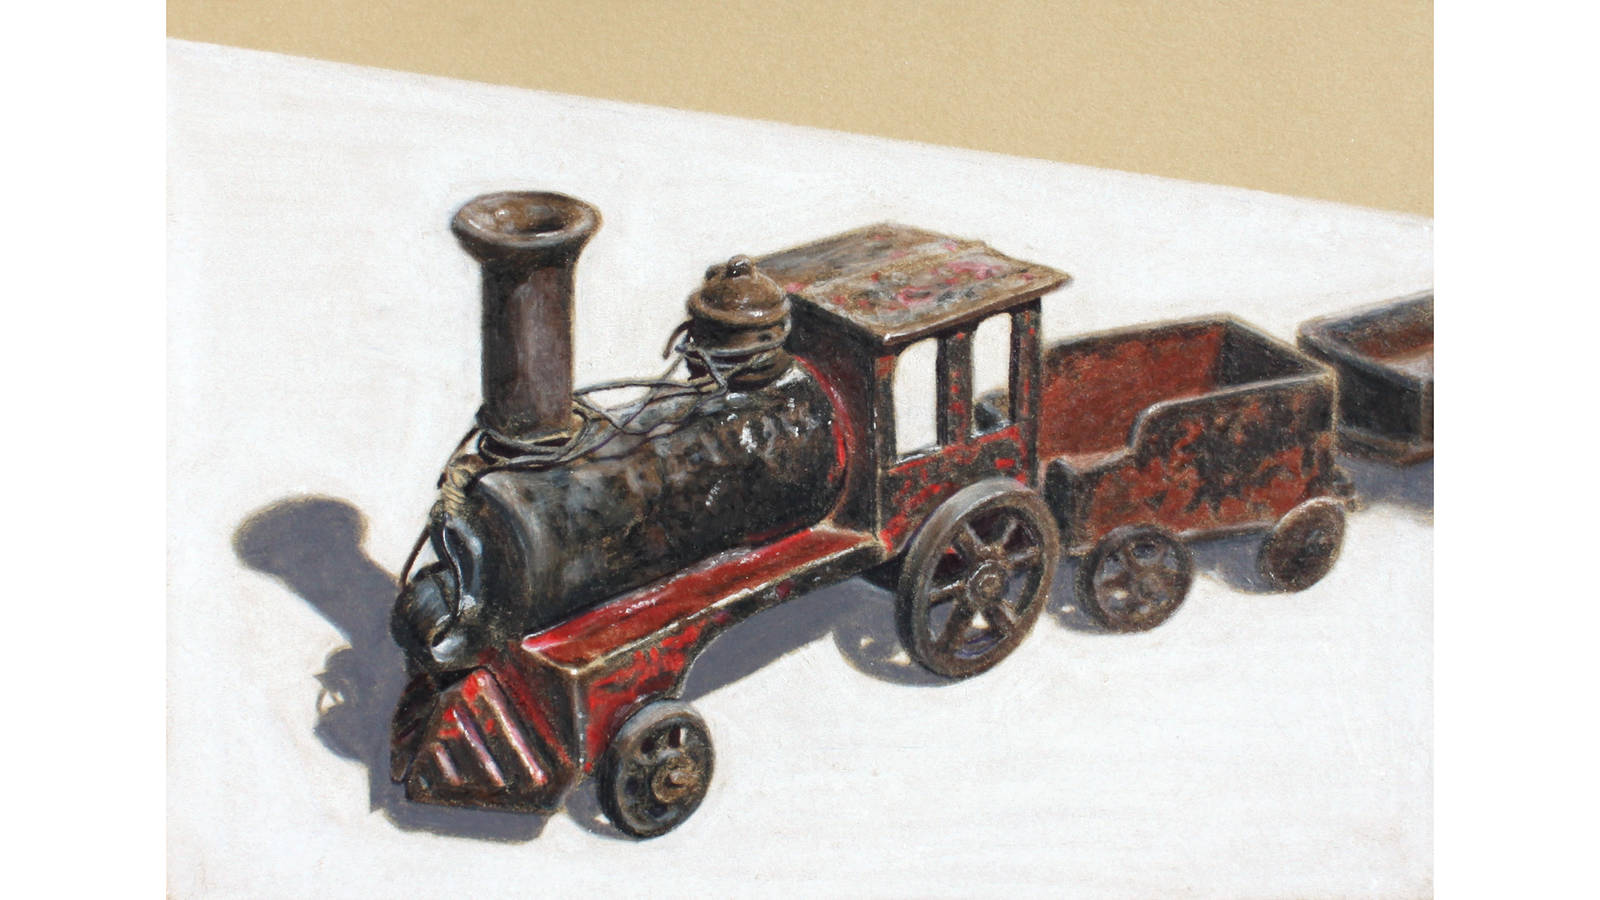 """<h3 style=""""text-align: center; padding: 50px;""""><span class=""""text-Intro-style"""">A colored pencil drawing of Herbert Hoover's boyhood train, completed in 2018. The train is part of the collection at the Herbert Hoover Presidential Library and Museum, which Heckel had access to during her residency at the Herbert Hoover National Historic Site in Iowa.</span></h3>"""